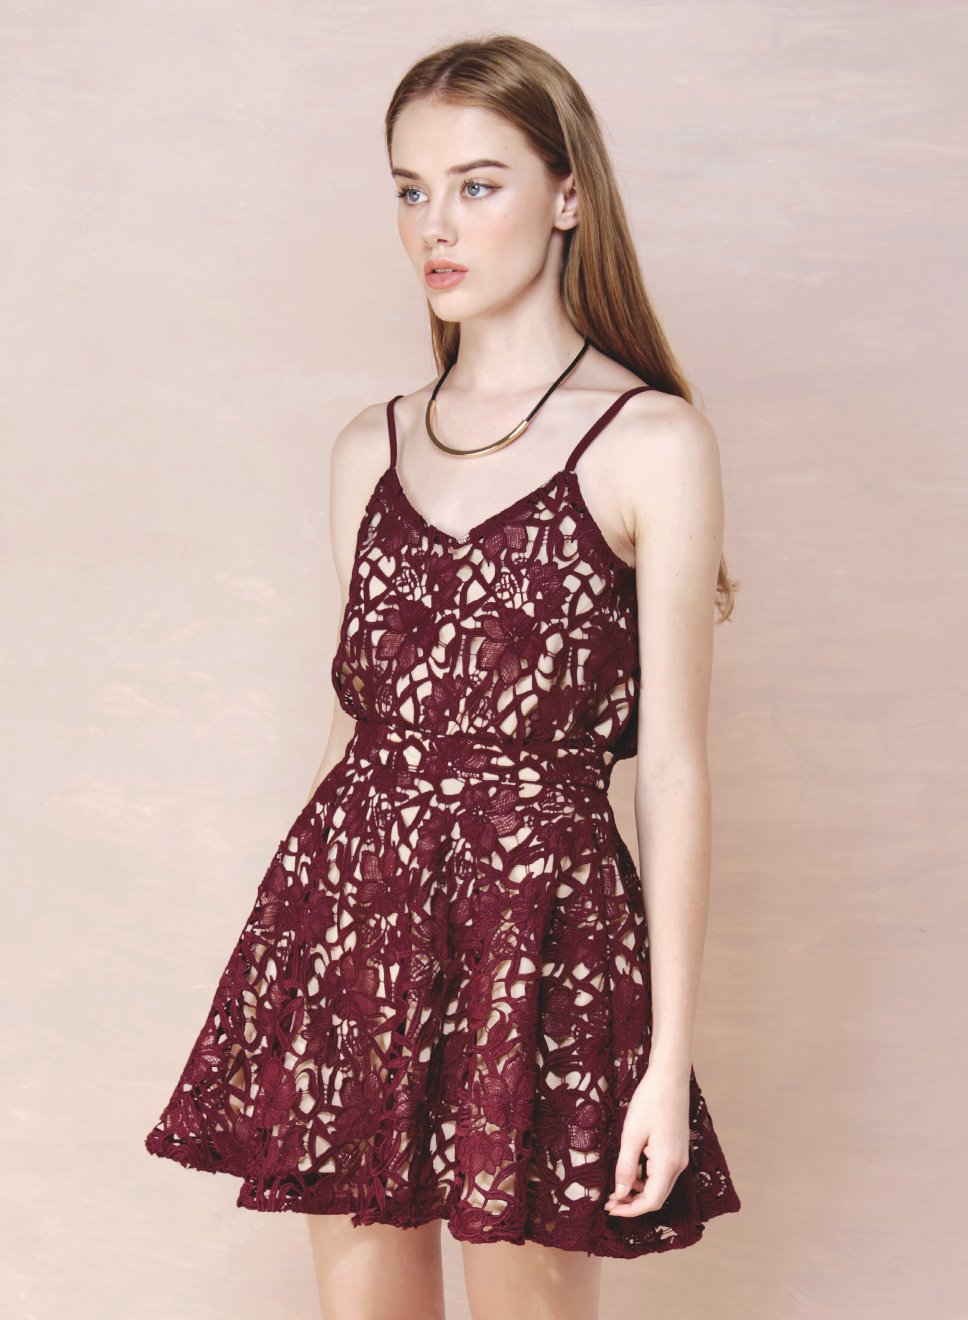 FACADE Crochet Flare Skirt (Wine) at $ 21.50 only sold at And Well Dressed Online Fashion Store Singapore